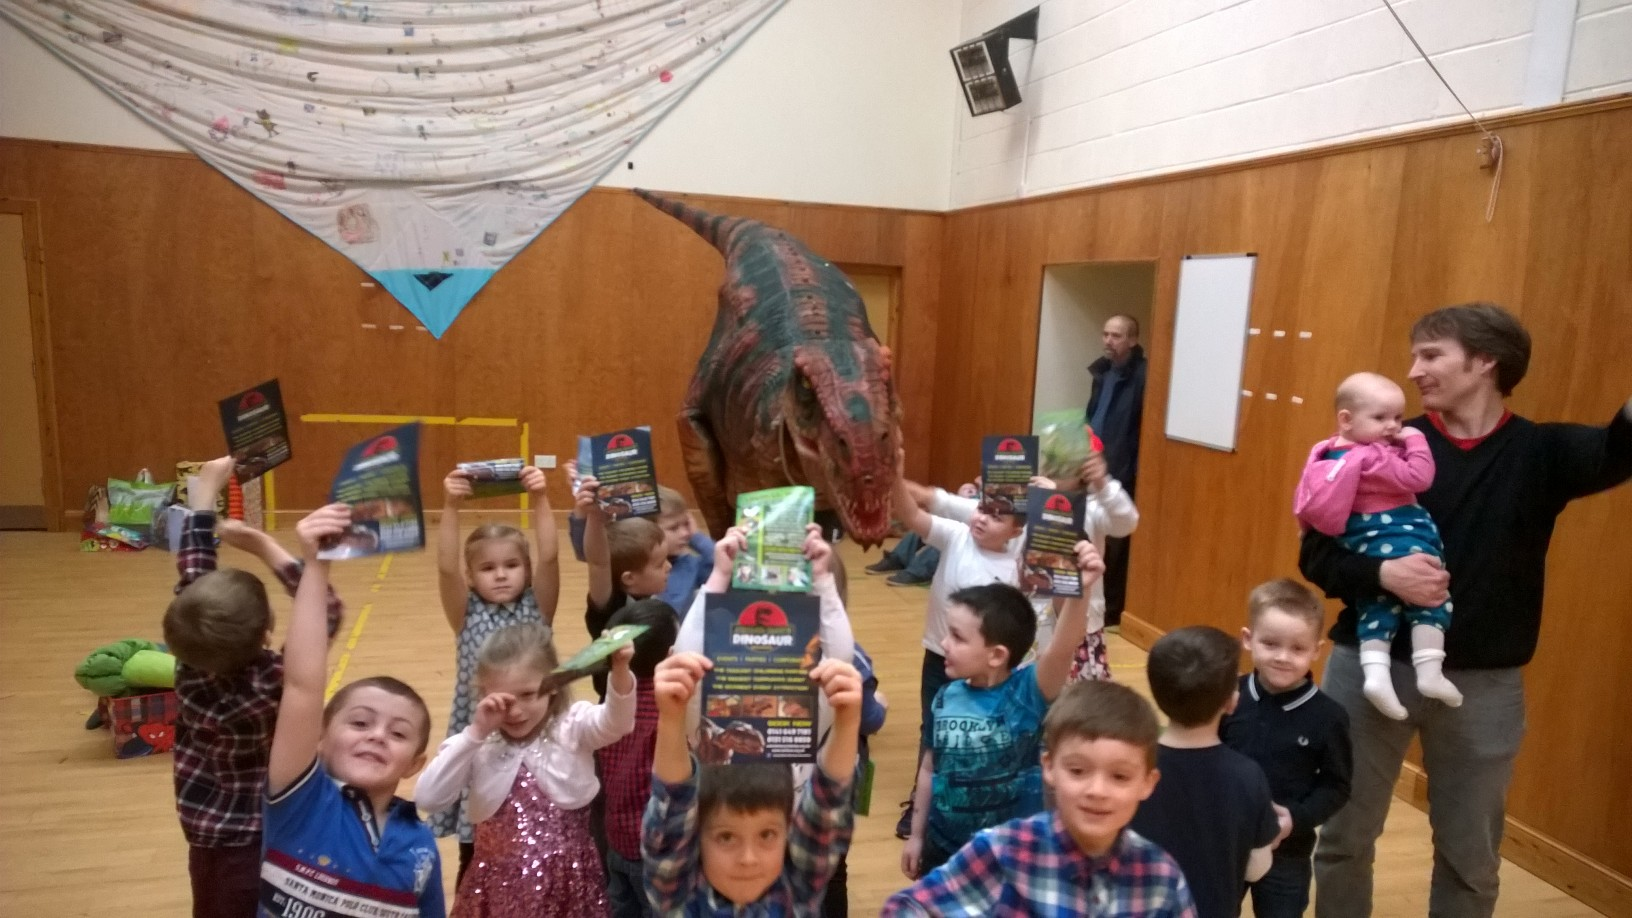 Boys Dinosaur Party Glasgow